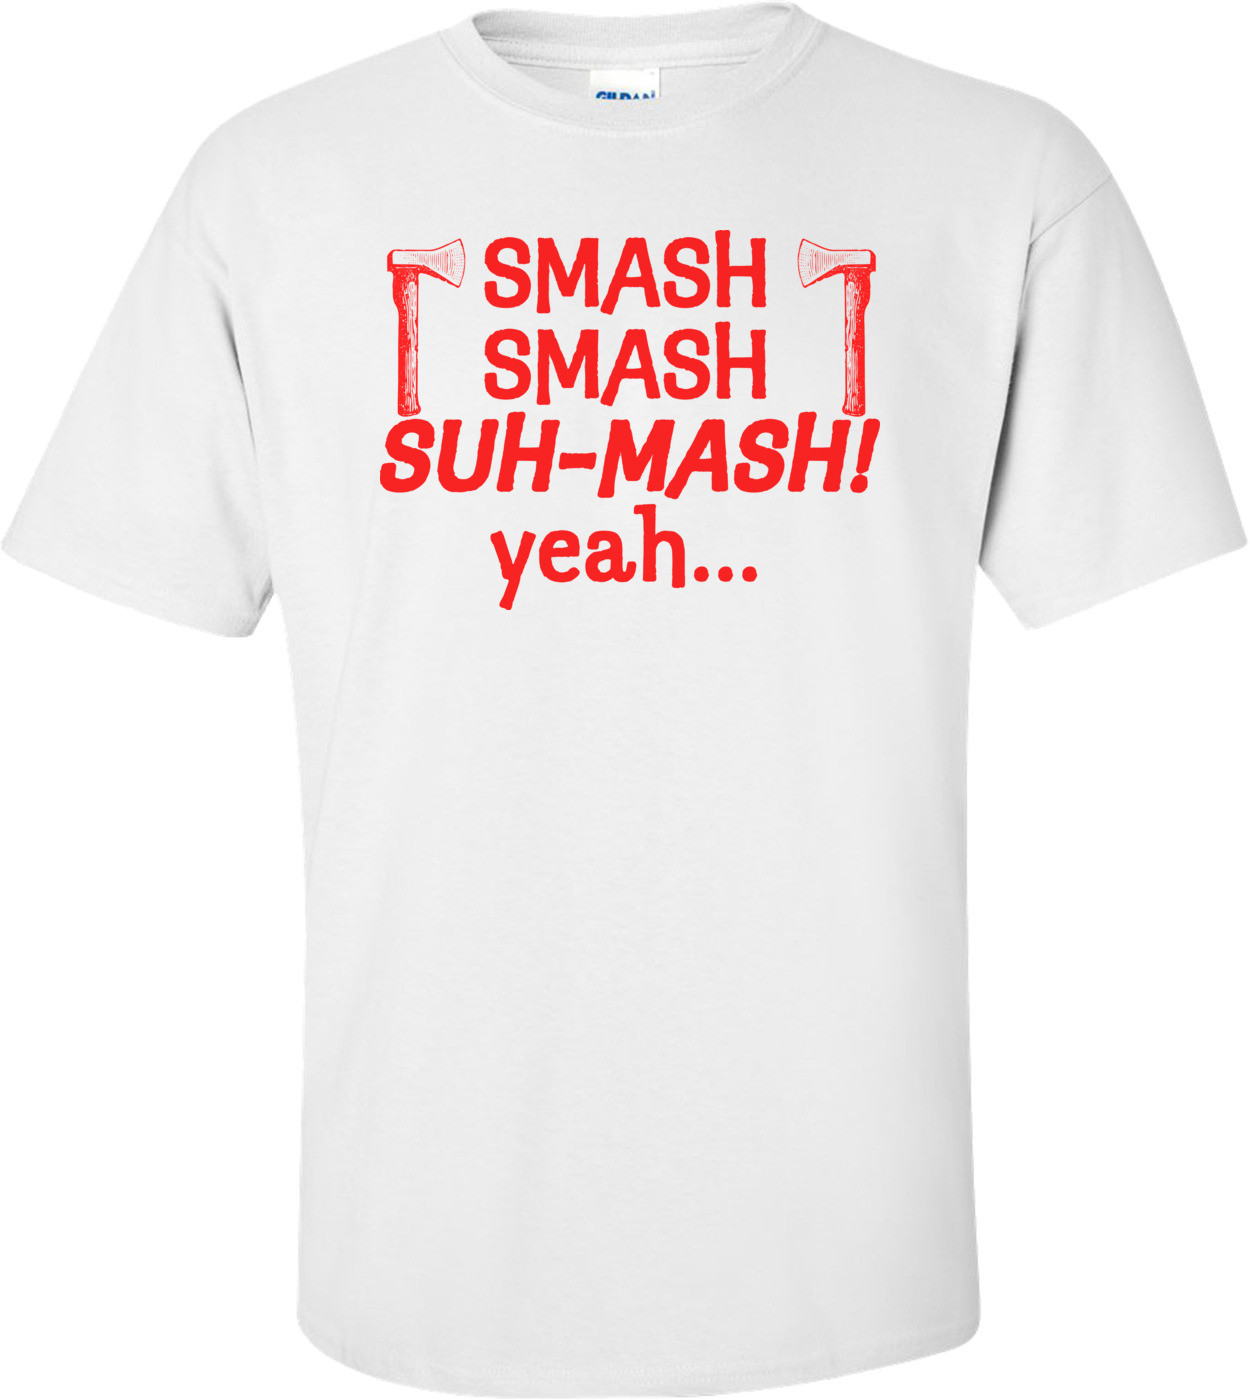 Smash, Smash, Smash! Homeless Hitchhiker Hero Kai T-shirt